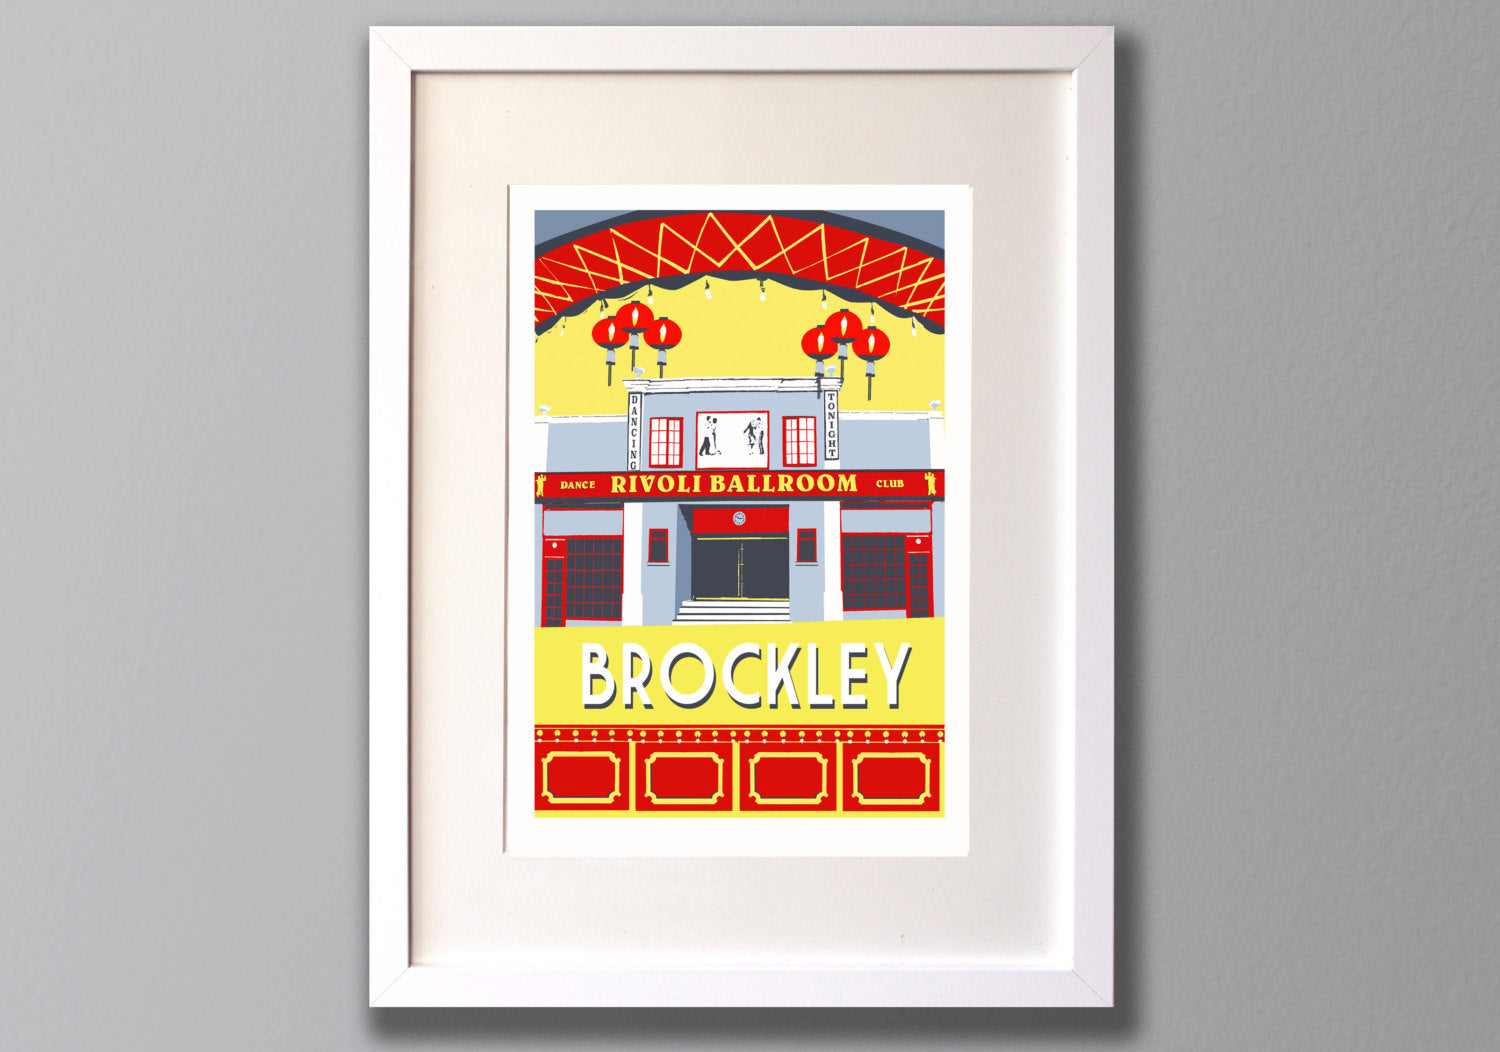 Brockley Rivoli Ballroom Screen Print, Local London Art - Red Faces Prints